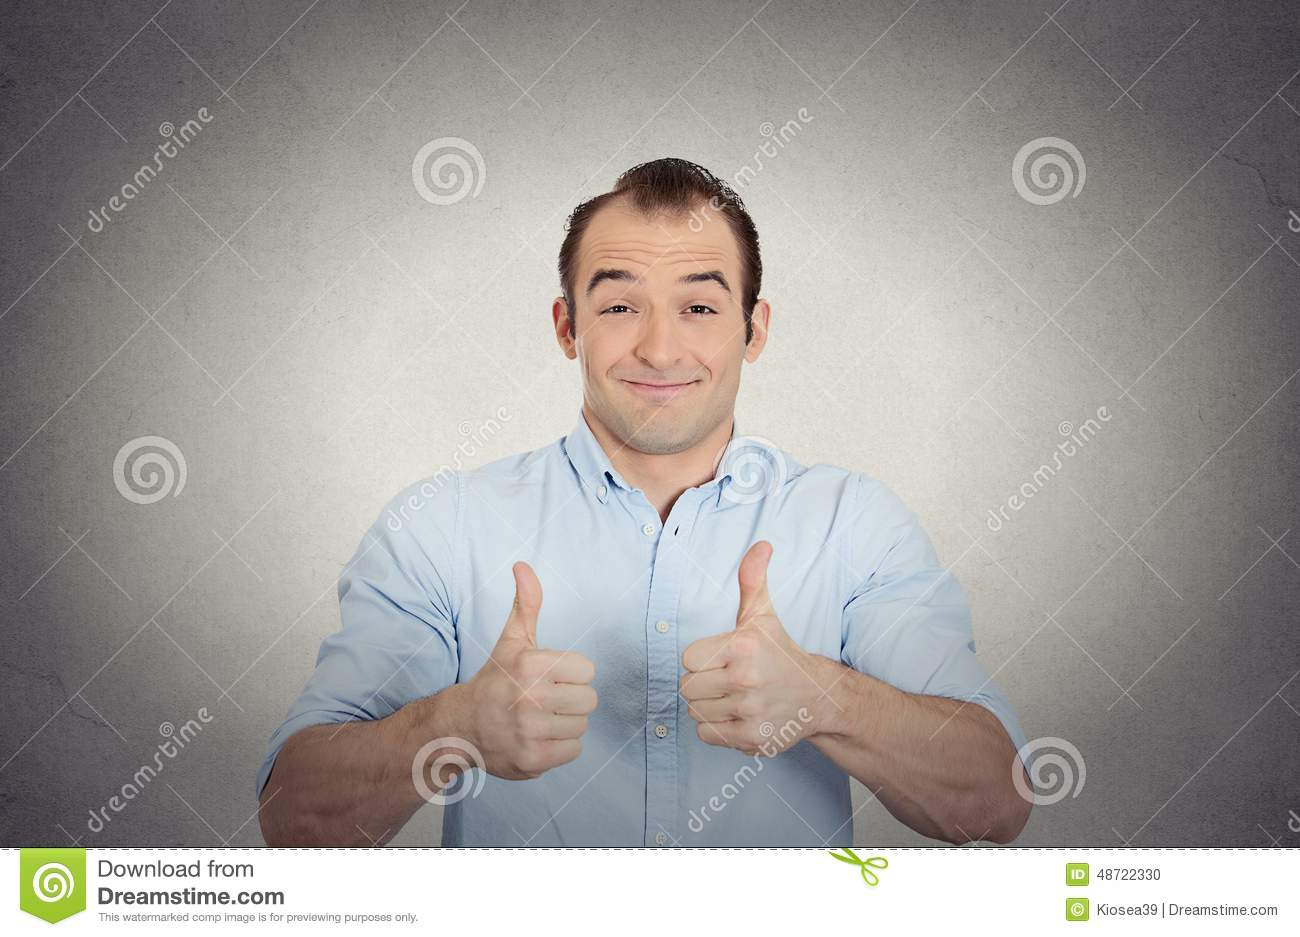 Happy, excited surprised young man showing thumbs up